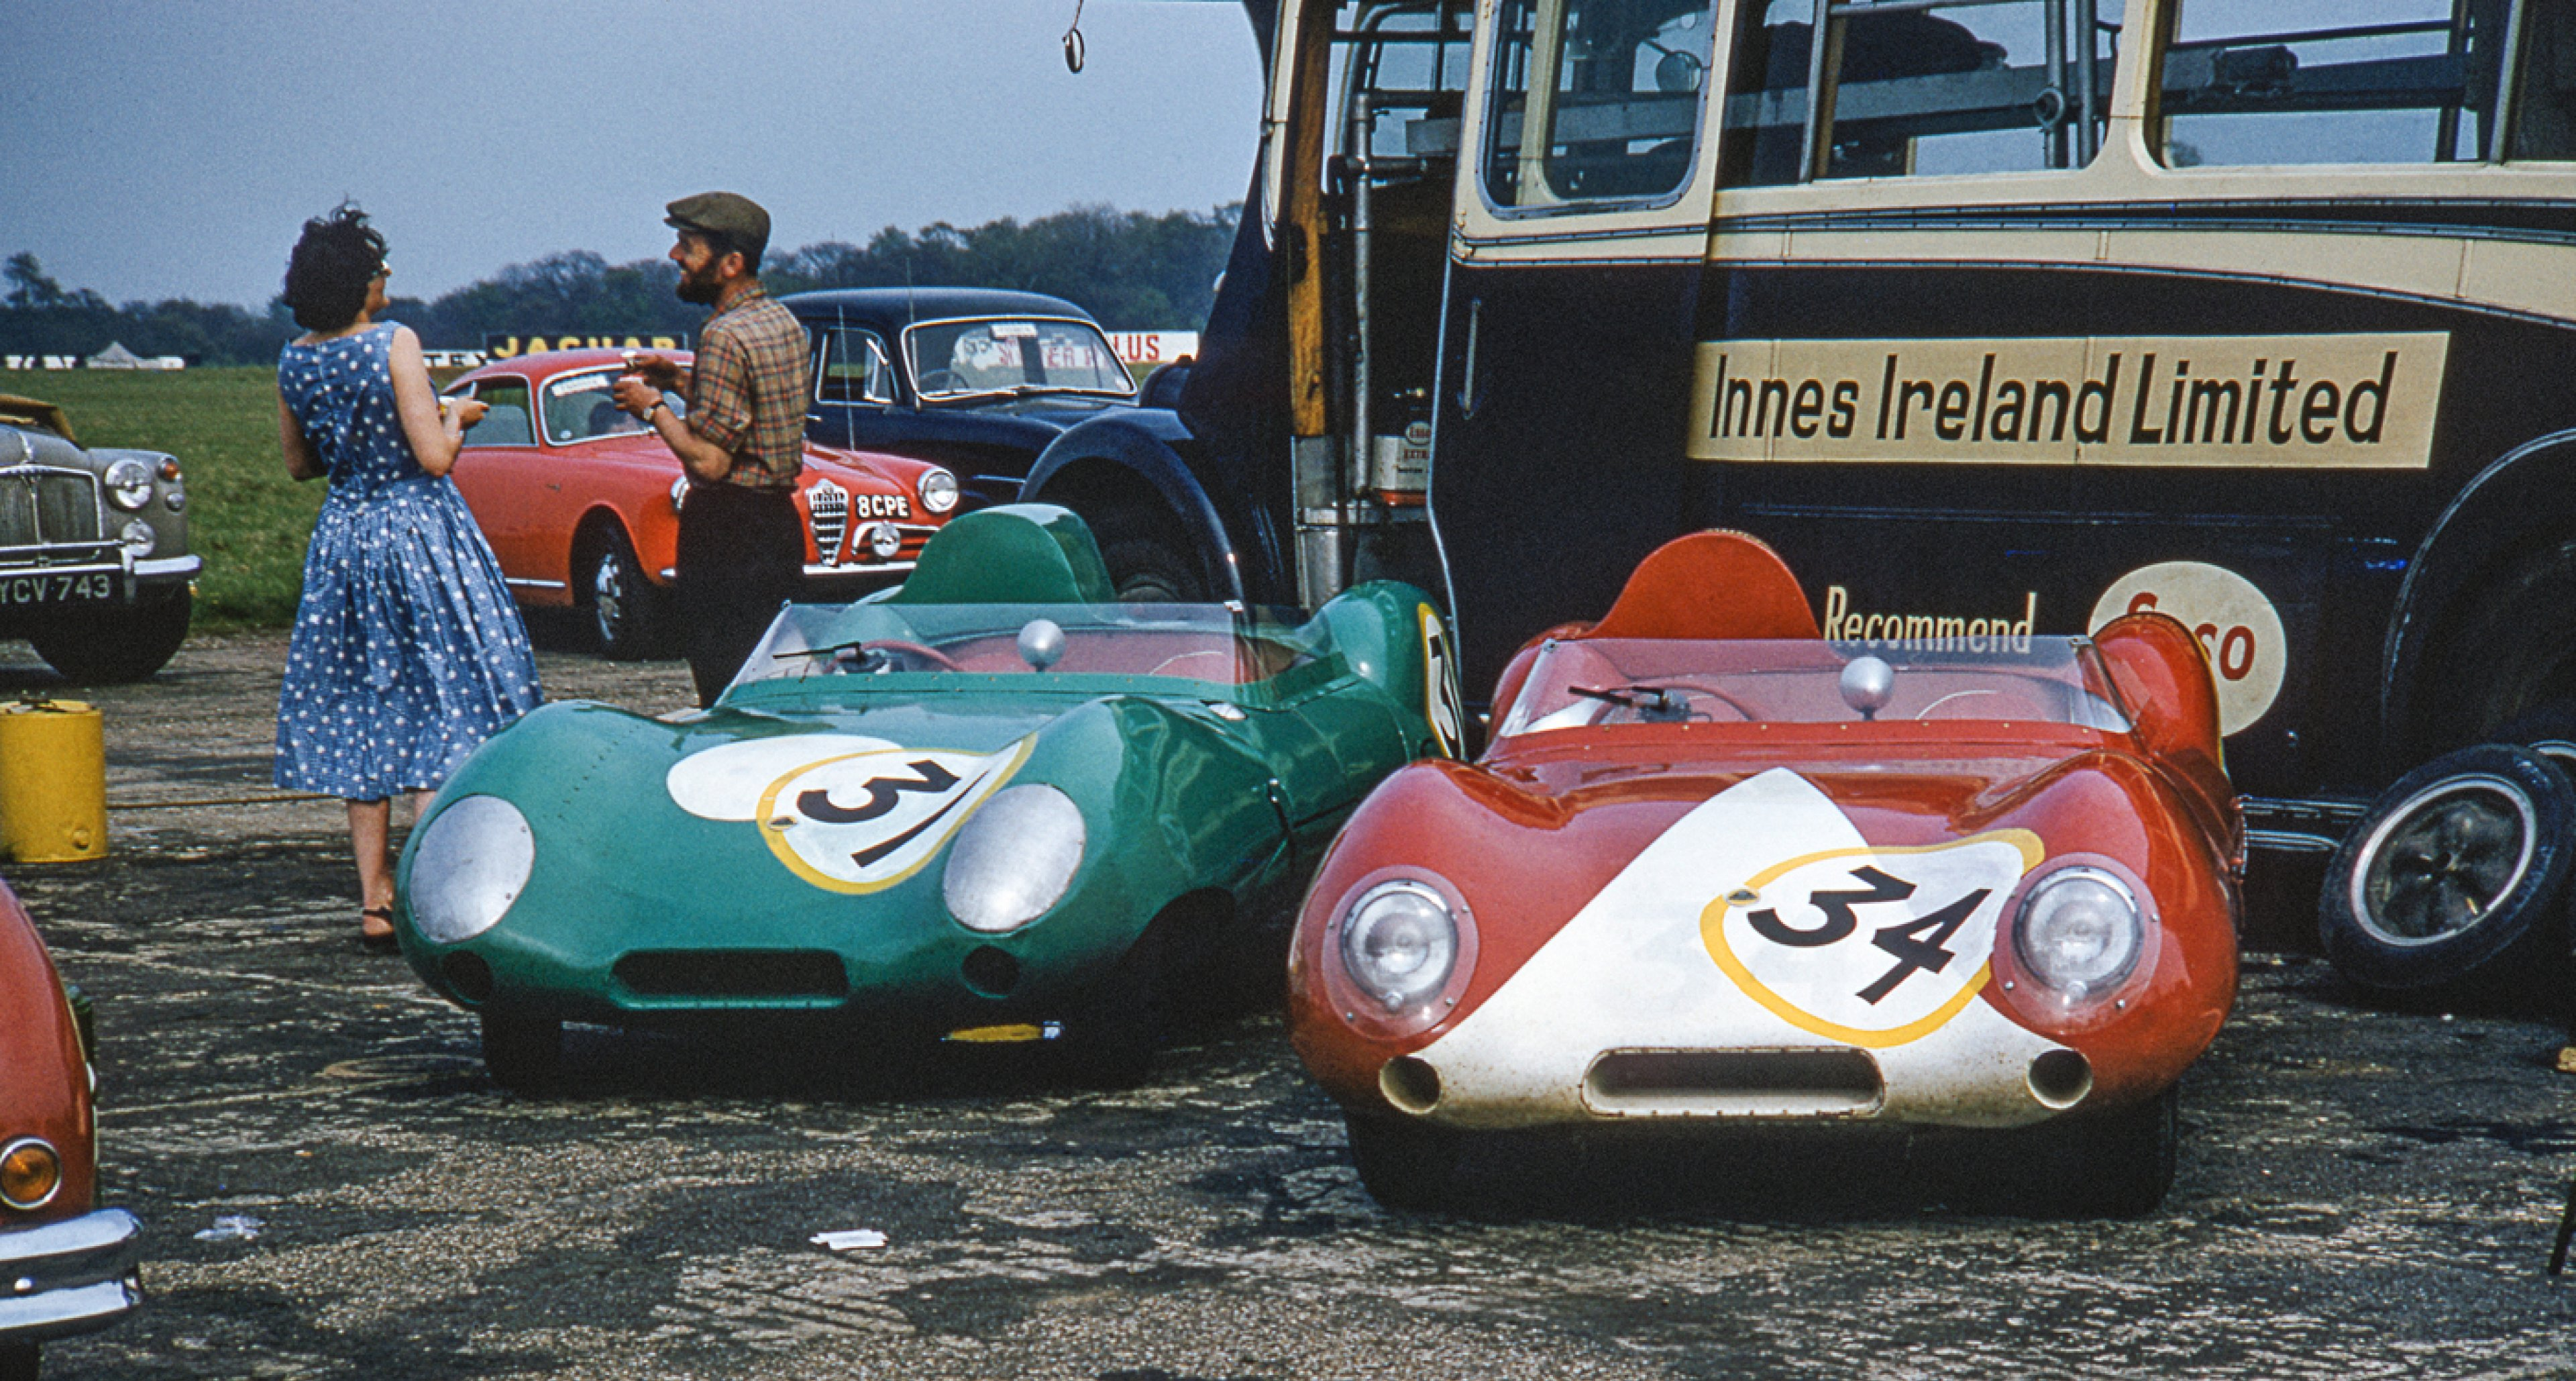 Innes Ireland and J. Westcott's Lotus XVs waiting in the paddock at the 1958 International Trophy Meeting in Silverstone.